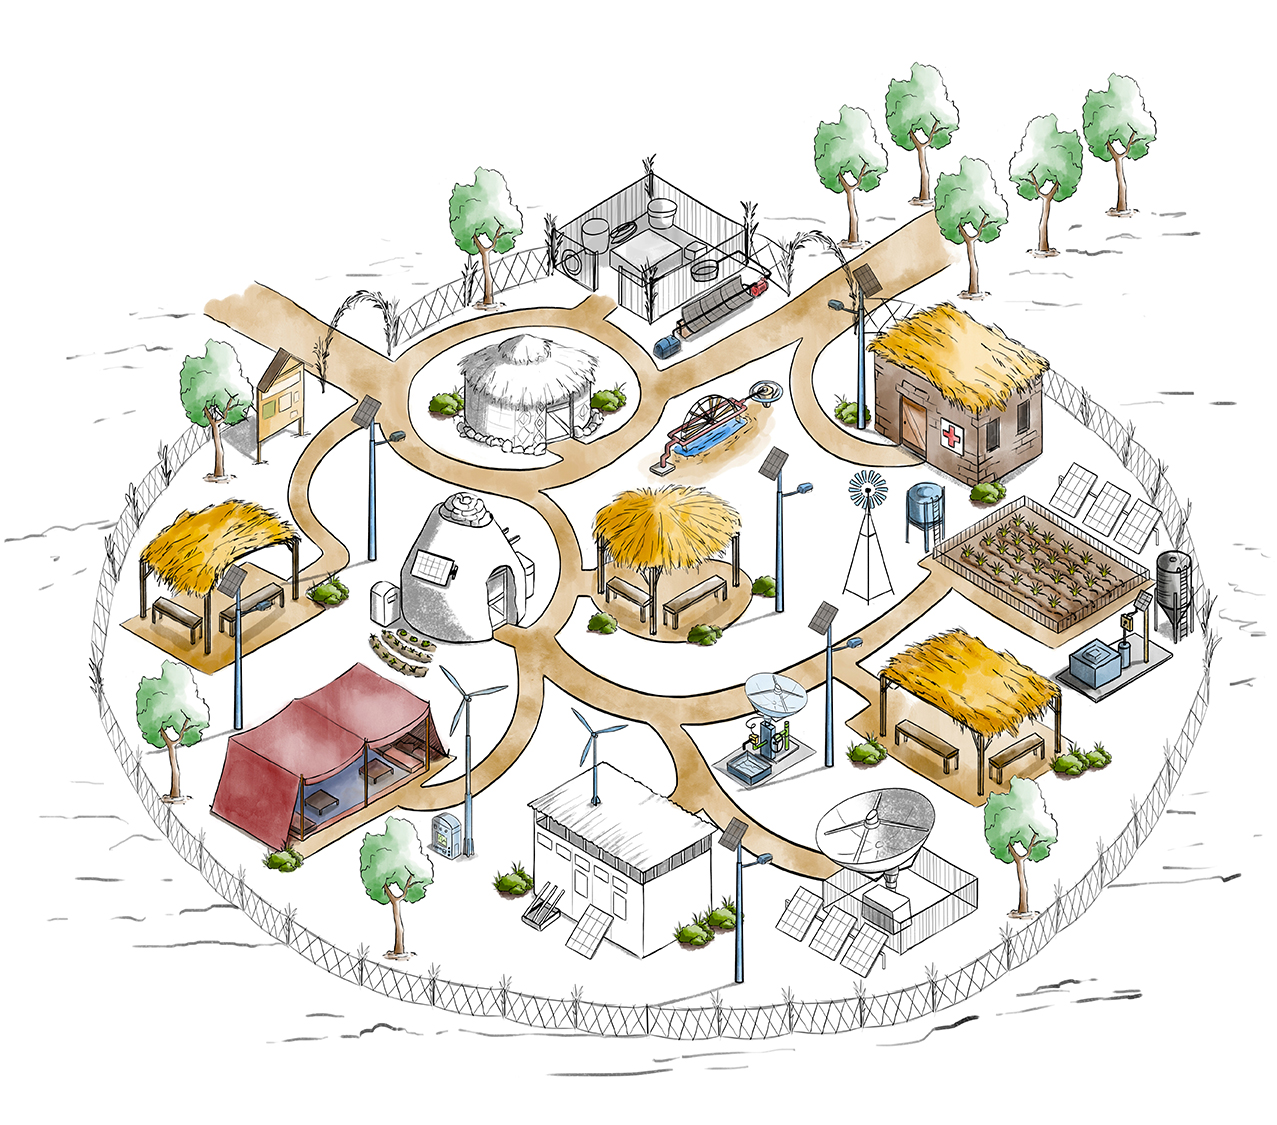 Sketch of the off grid village from the birds view perspective